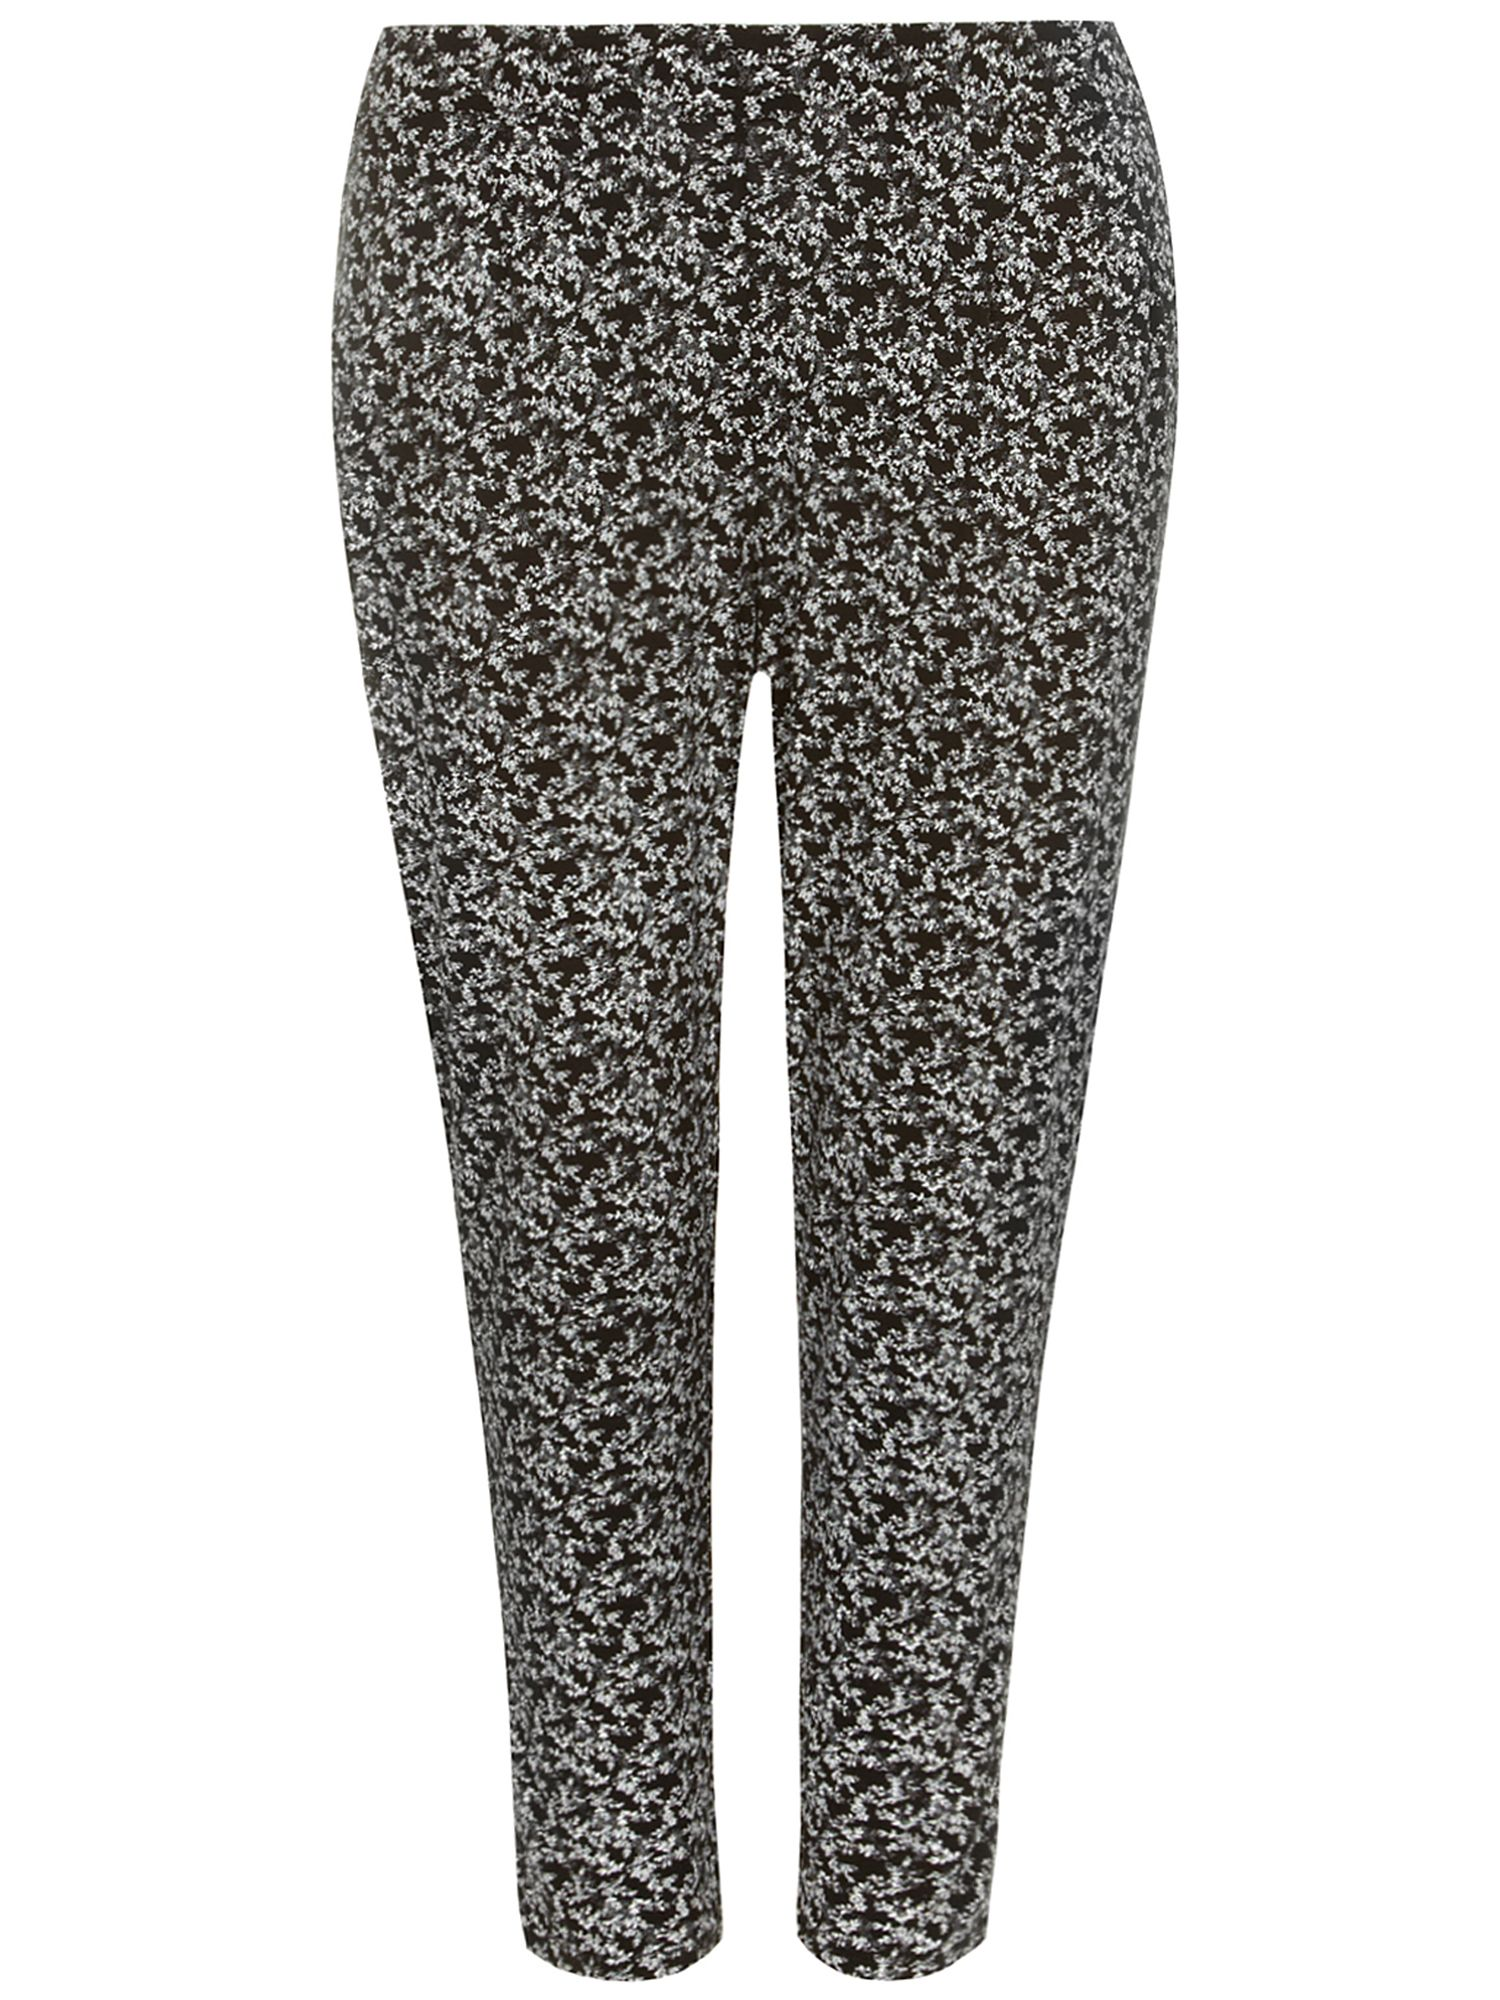 Black and White Floral Tapered Trouser